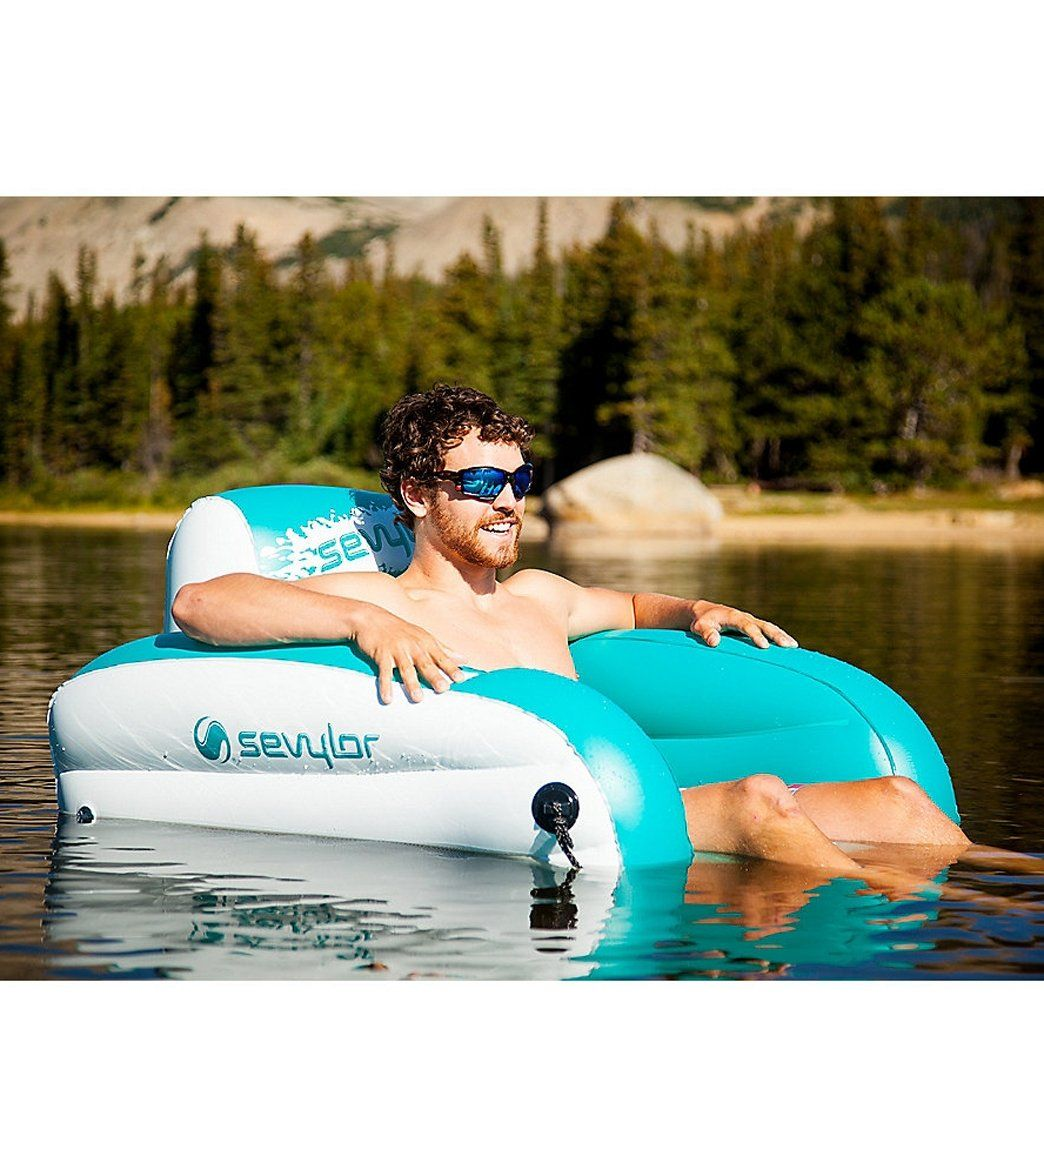 Outstanding Coleman Inflatable Lake Water Lounge Chair At Swimoutlet Com Unemploymentrelief Wooden Chair Designs For Living Room Unemploymentrelieforg